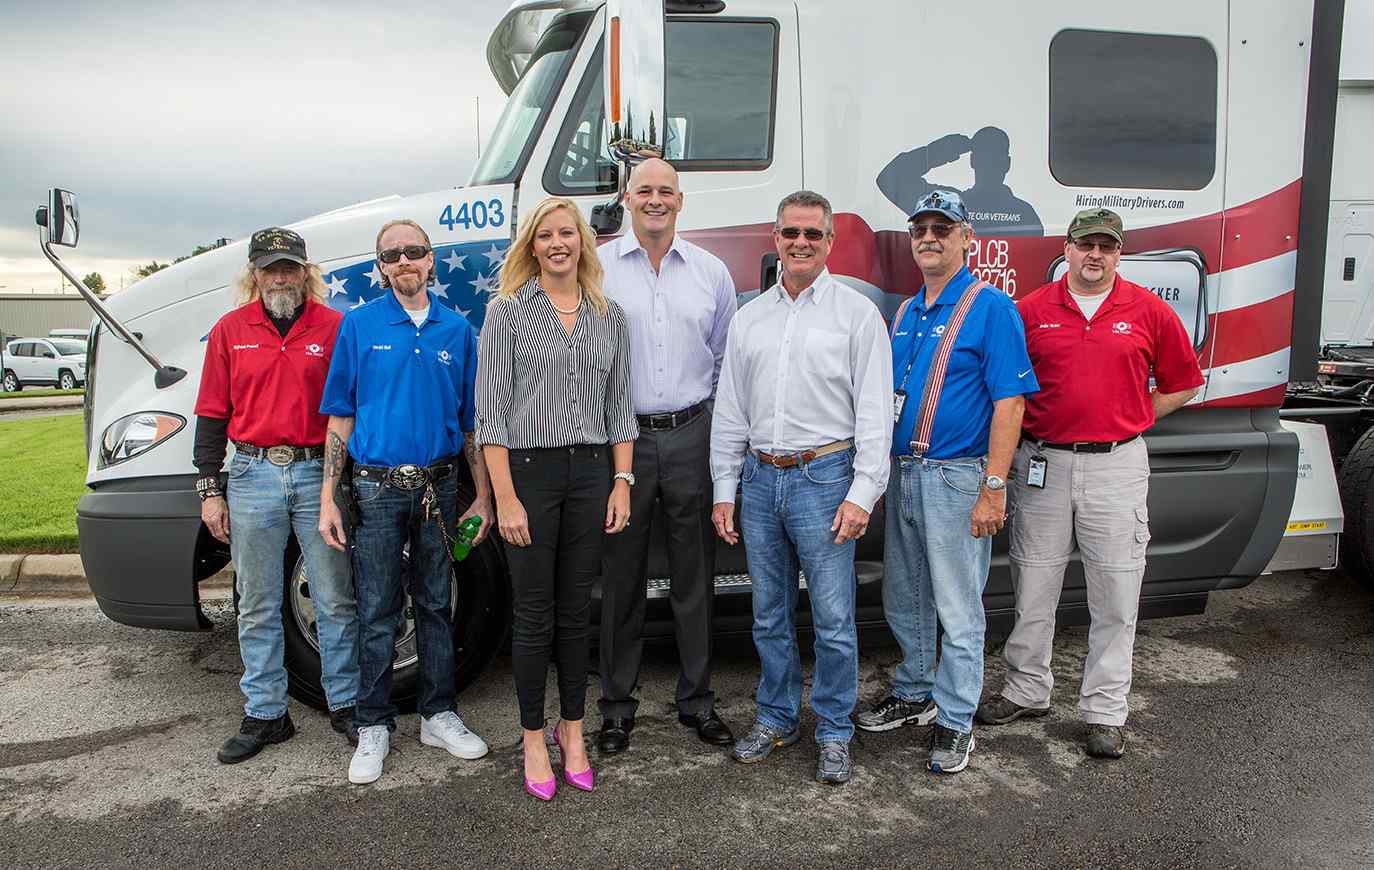 USA Truck presented four of its outstanding military veteran driving team members with personalized, military-themed tractors during a celebration September 11, 2015 at the Company's corporate headquarters in Van Buren, AR. Pictured from left: Michael Powell, U.S. Marines veteran; David Bell, U.S. Navy veteran; Shannon Newton, President of the Arkansas Trucking Association; Russell Overla, Executive Vice President of Truckload Operations for USA Truck; Tom Glaser, President & CEO of USA Truck; Robert Decker, U.S. Air Force veteran; and Jodie Yoder, U.S. Army veteran.